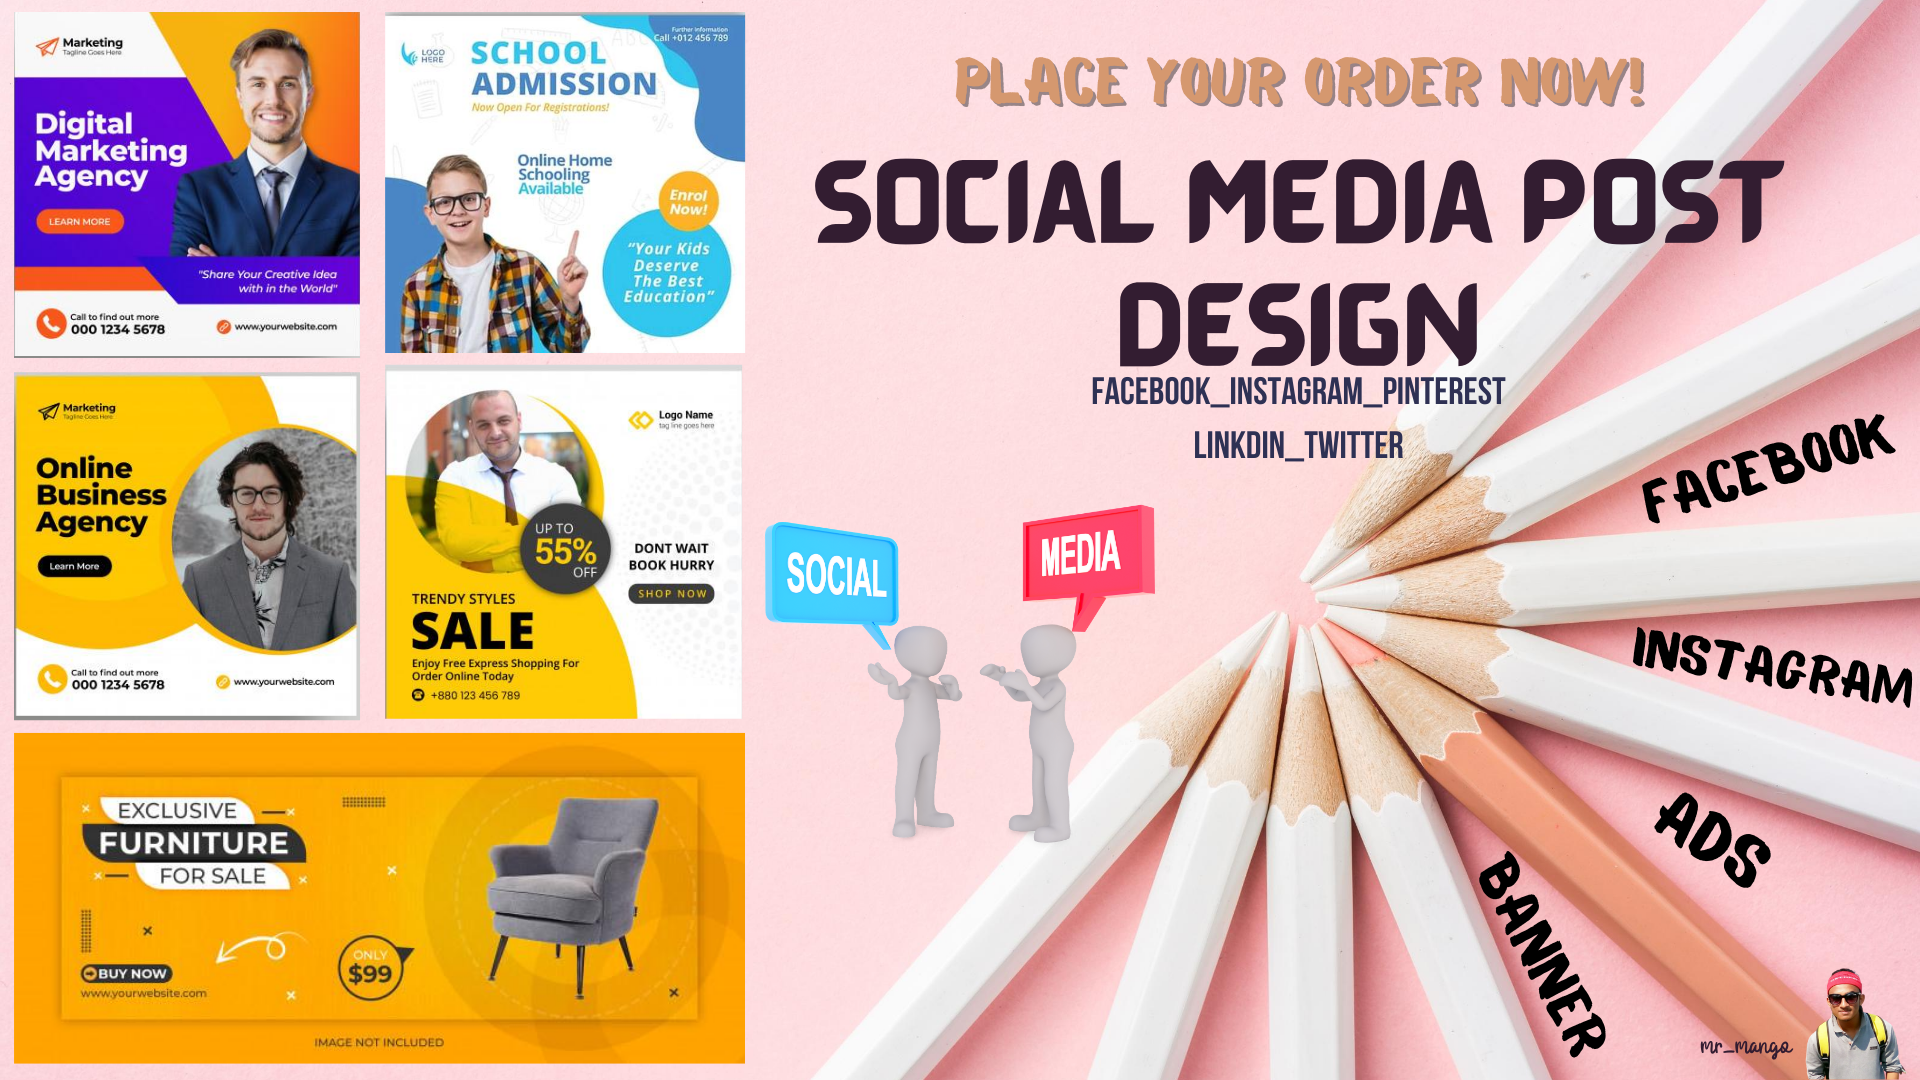 I will create unique social media ads design using canva pro & illustrator